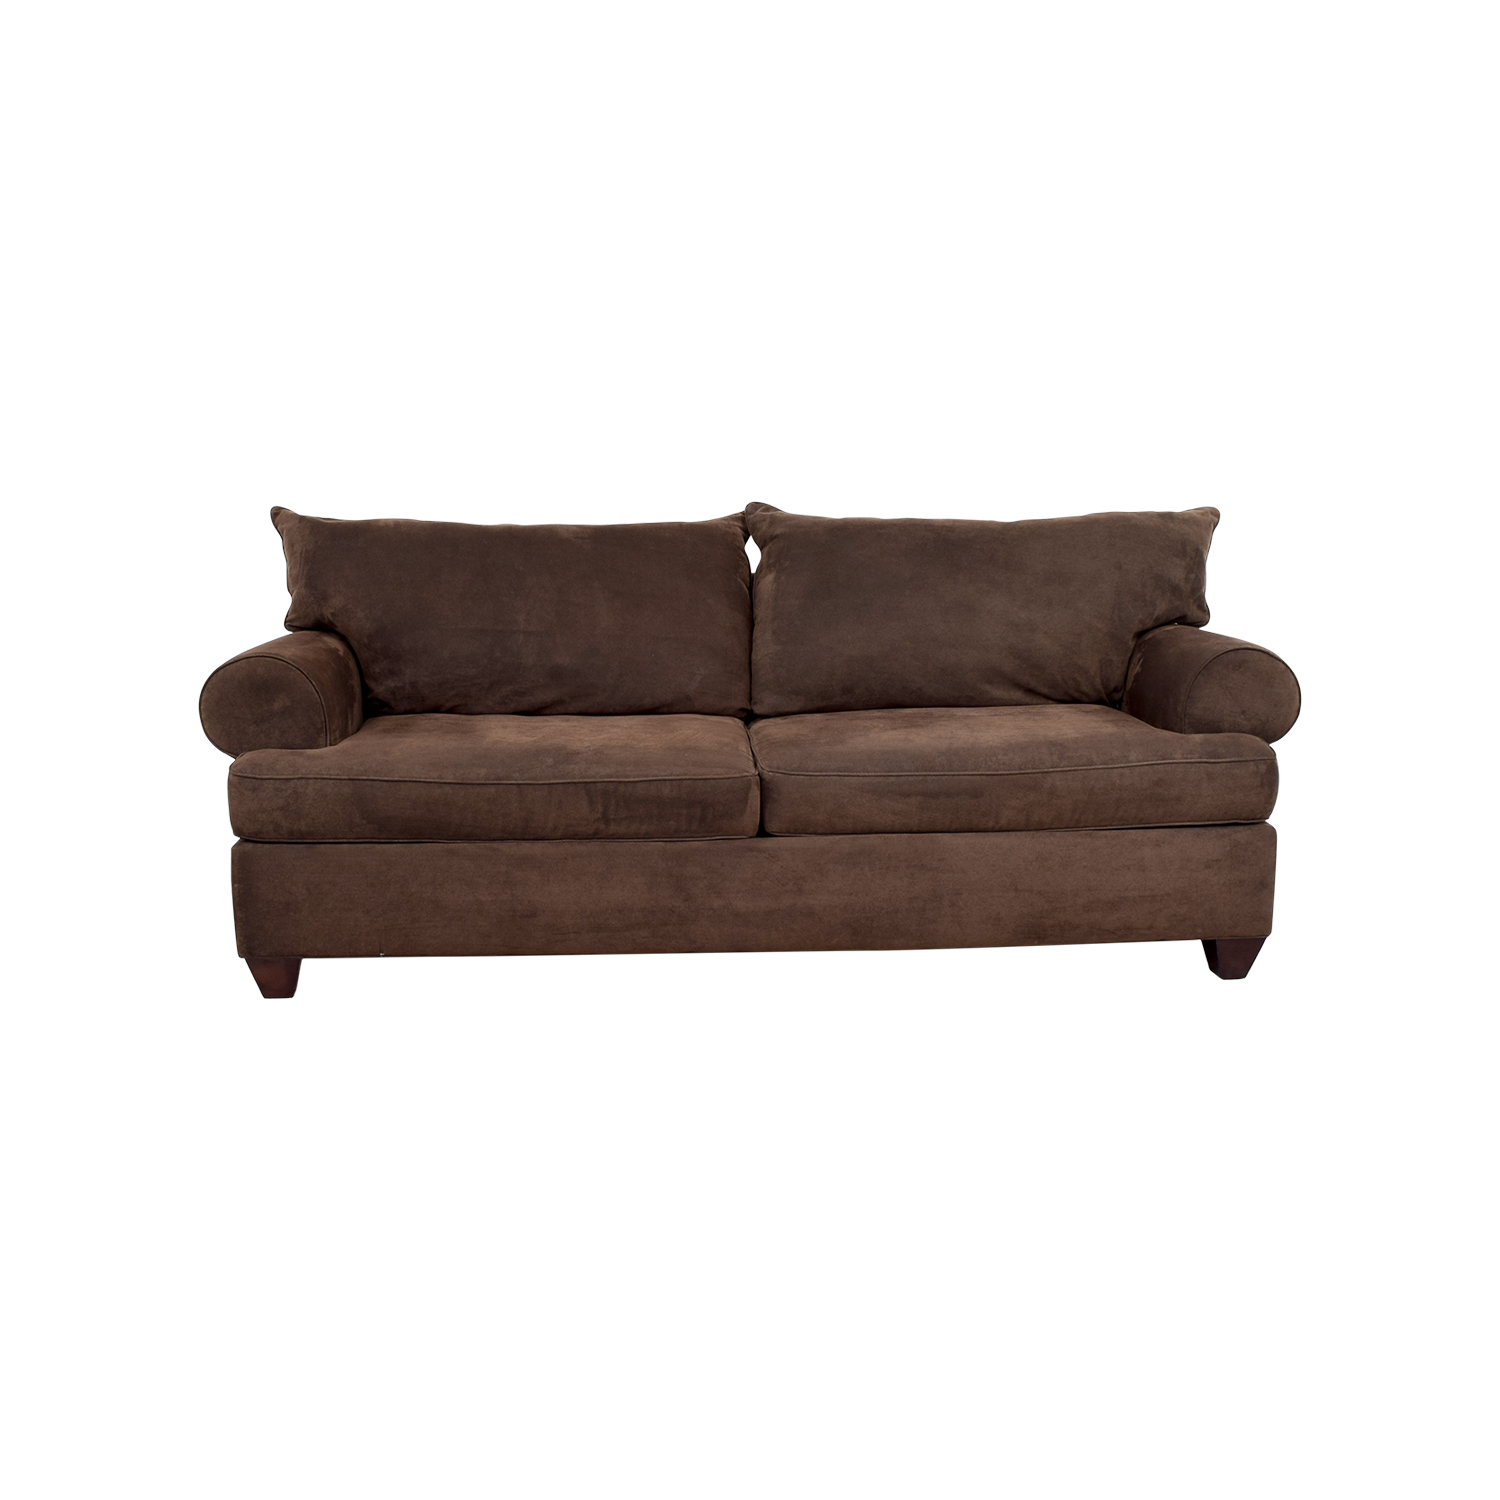 Corduroy 3 Seater Sofa 47 Off Brown Corduroy Two Cushion Couch Sofas